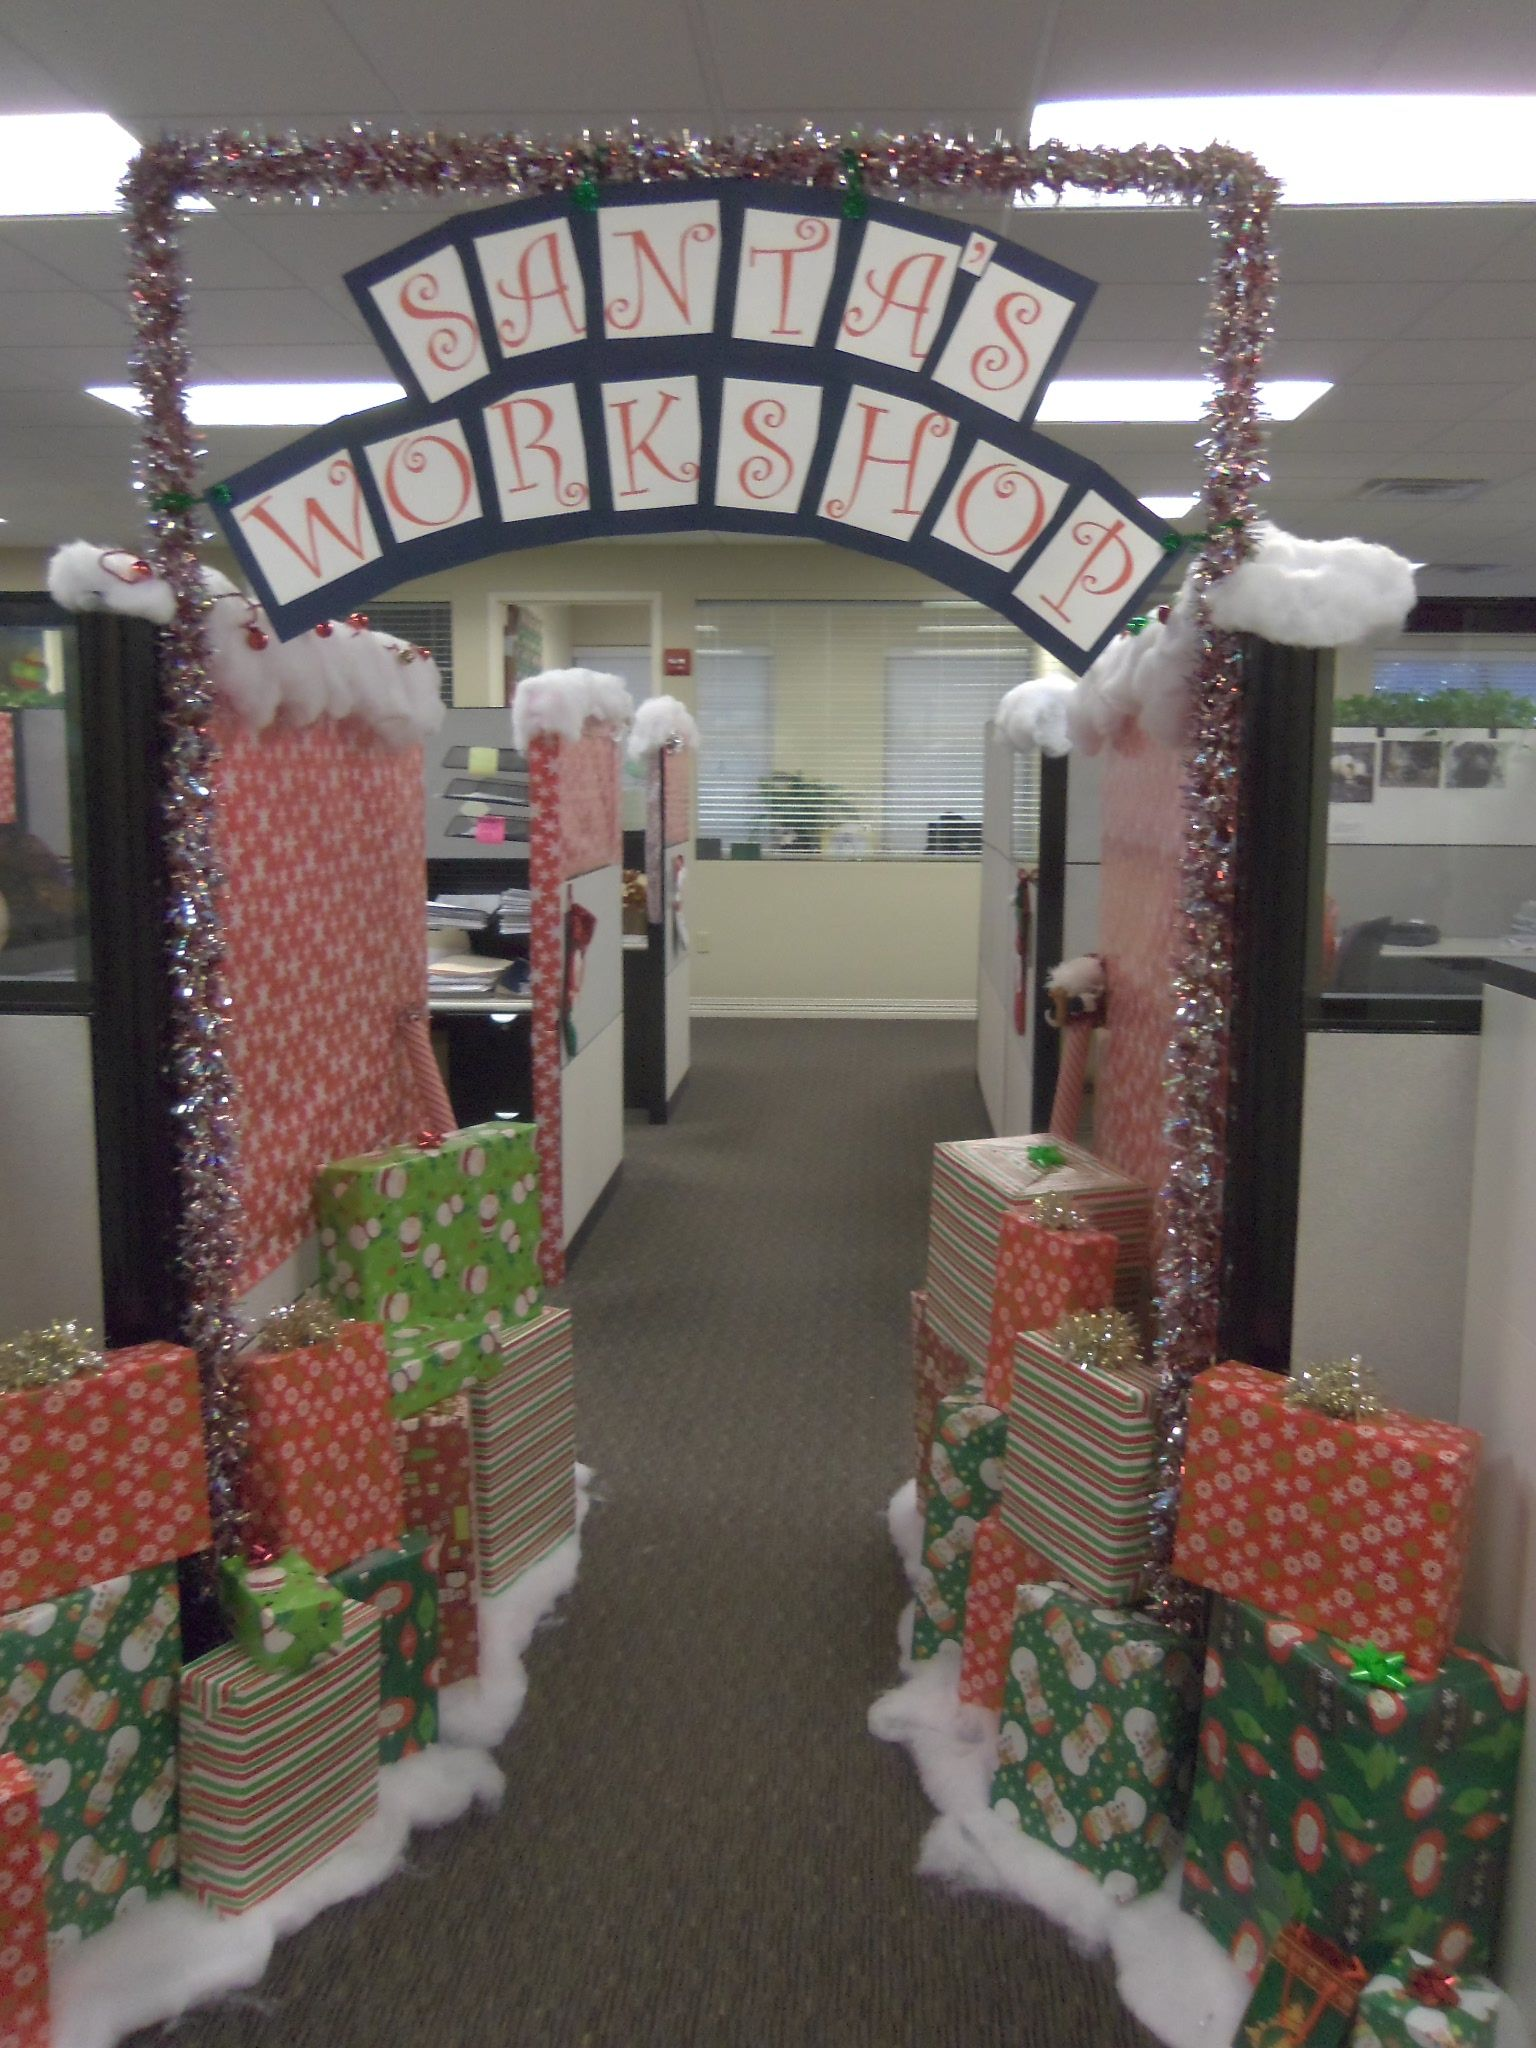 office christmas decor. Christmas Decorations Can Boost Morale At The Office. Leland Management Embraces Season And Encourages Holiday Spirit. Office Decor M